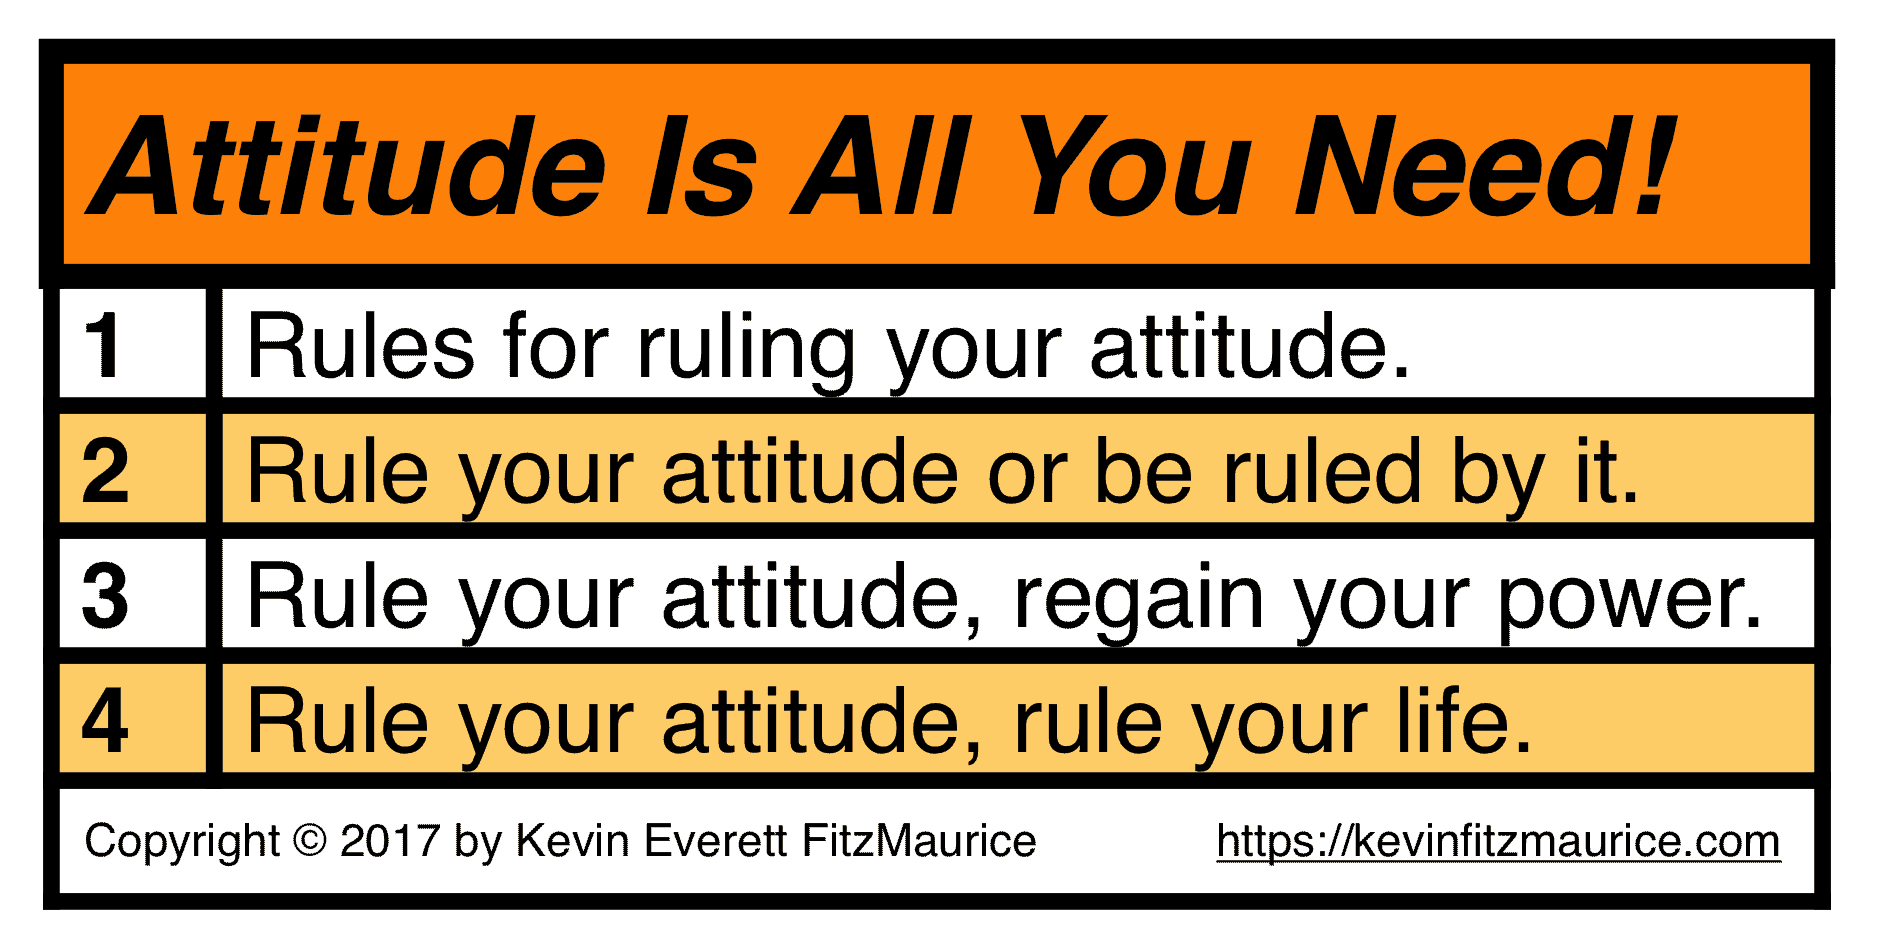 Rules for your attitude